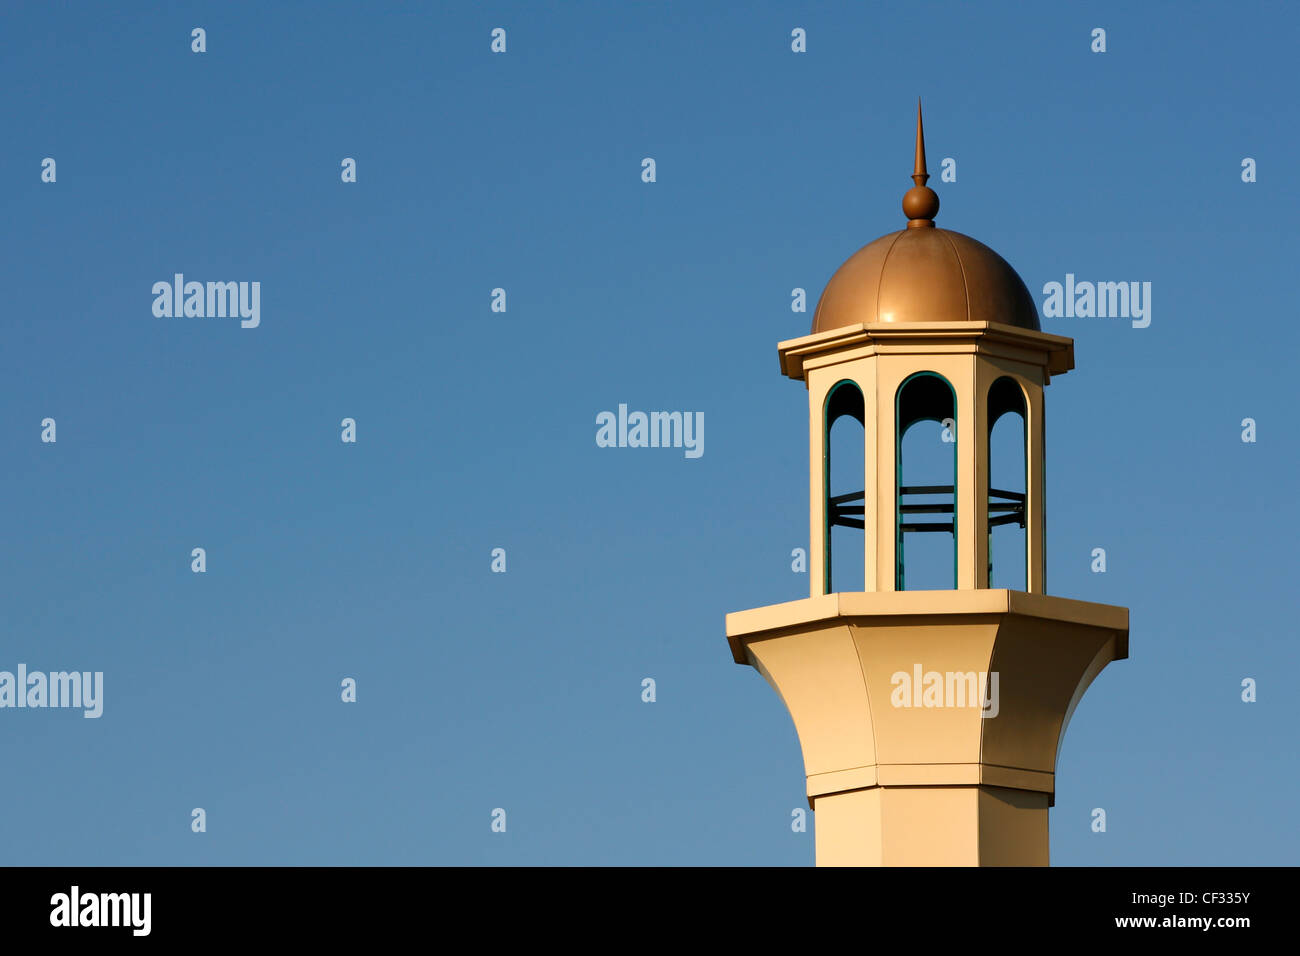 A minaret on the Darul Barakaat Mosque, one of the largest mosques in Birmingham, in the Bordesley Green area. - Stock Image